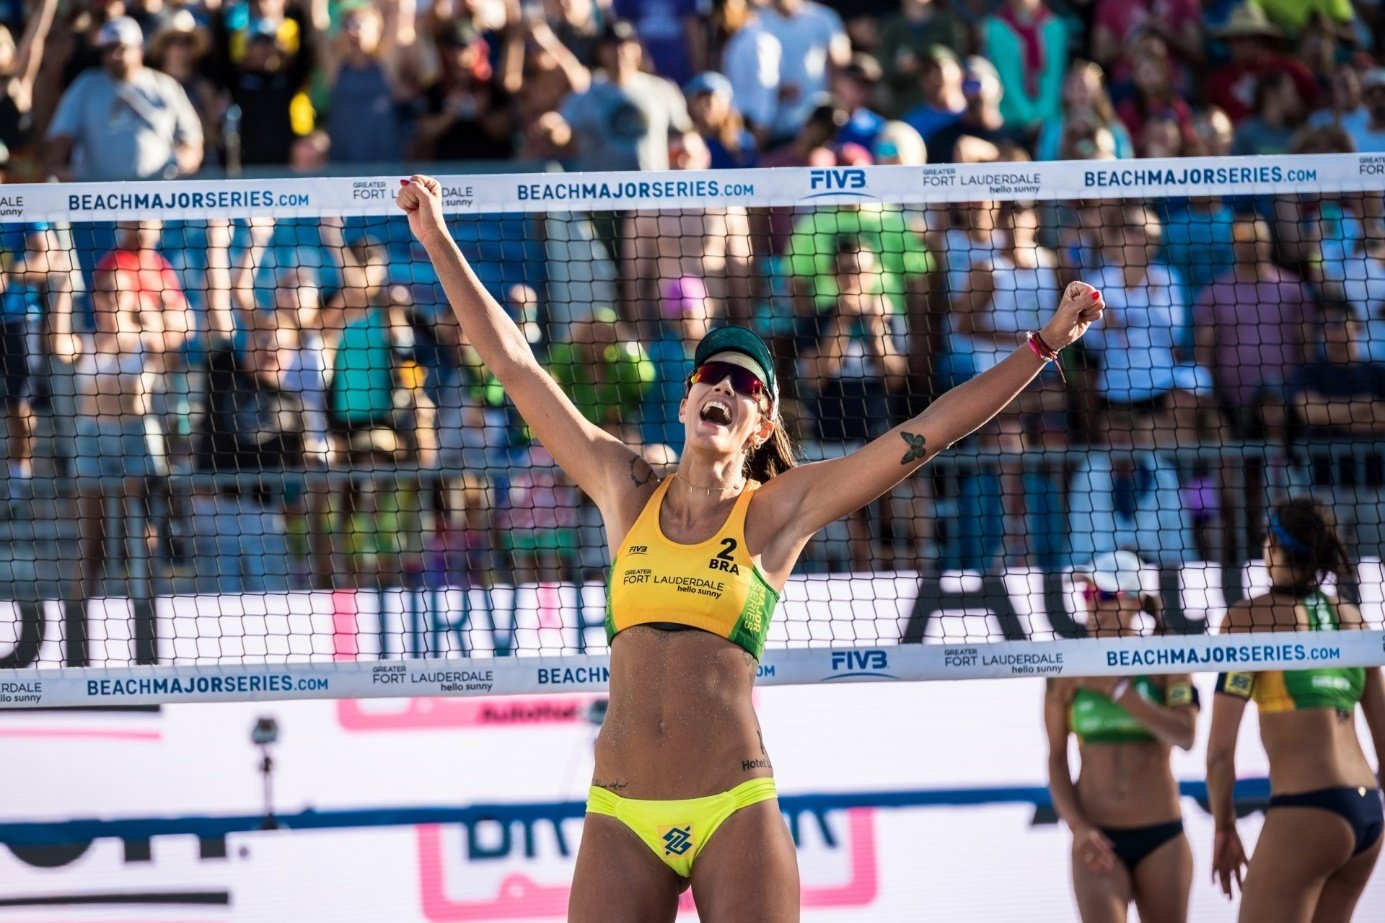 Look how happy beach volleyball attire can make you. Photocredit: Malte Christians